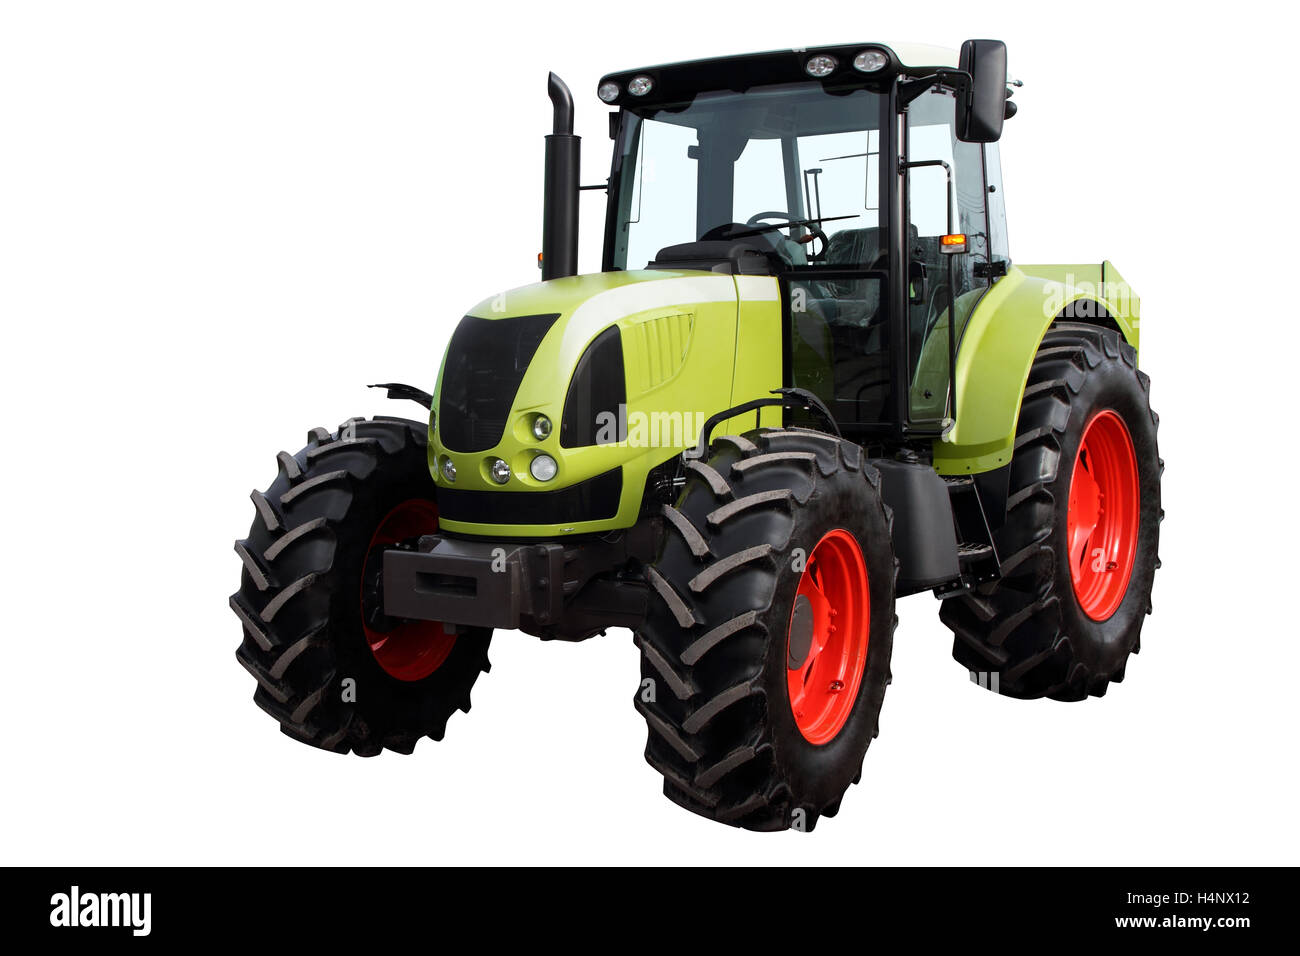 Modern heavy tractor isolated on a white background. - Stock Image